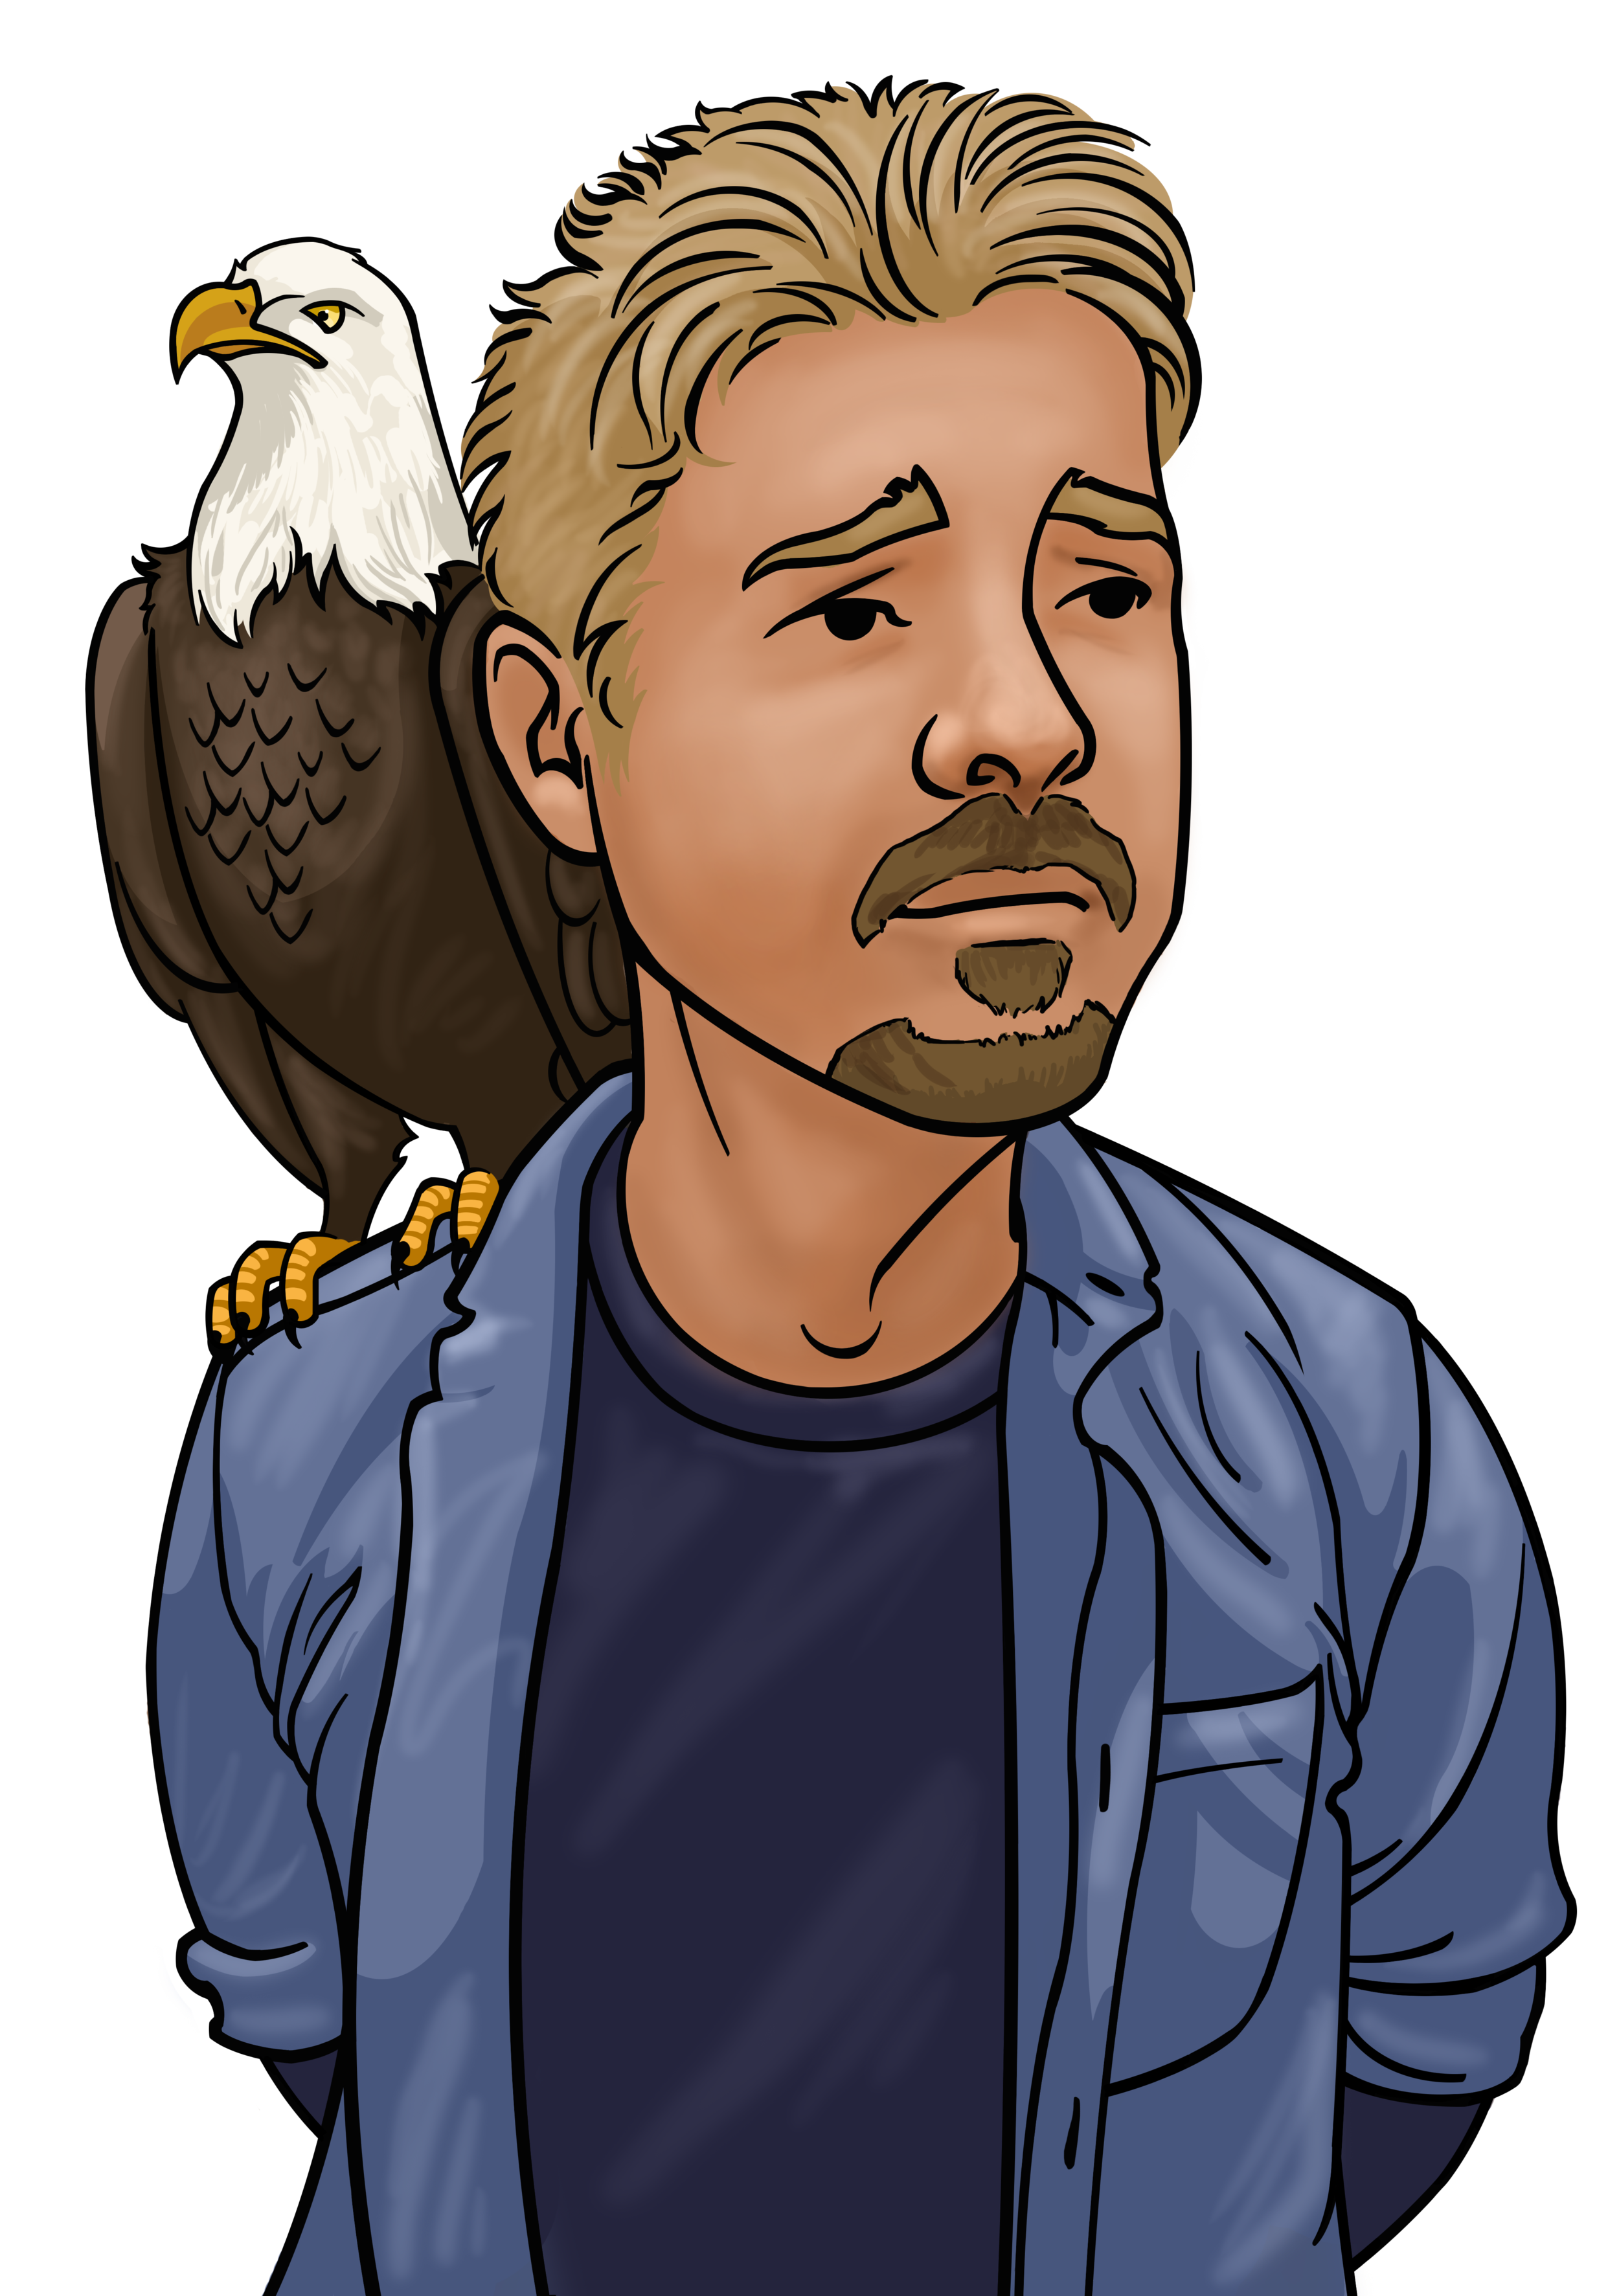 Alex portrait eagle - consolidated layers .png